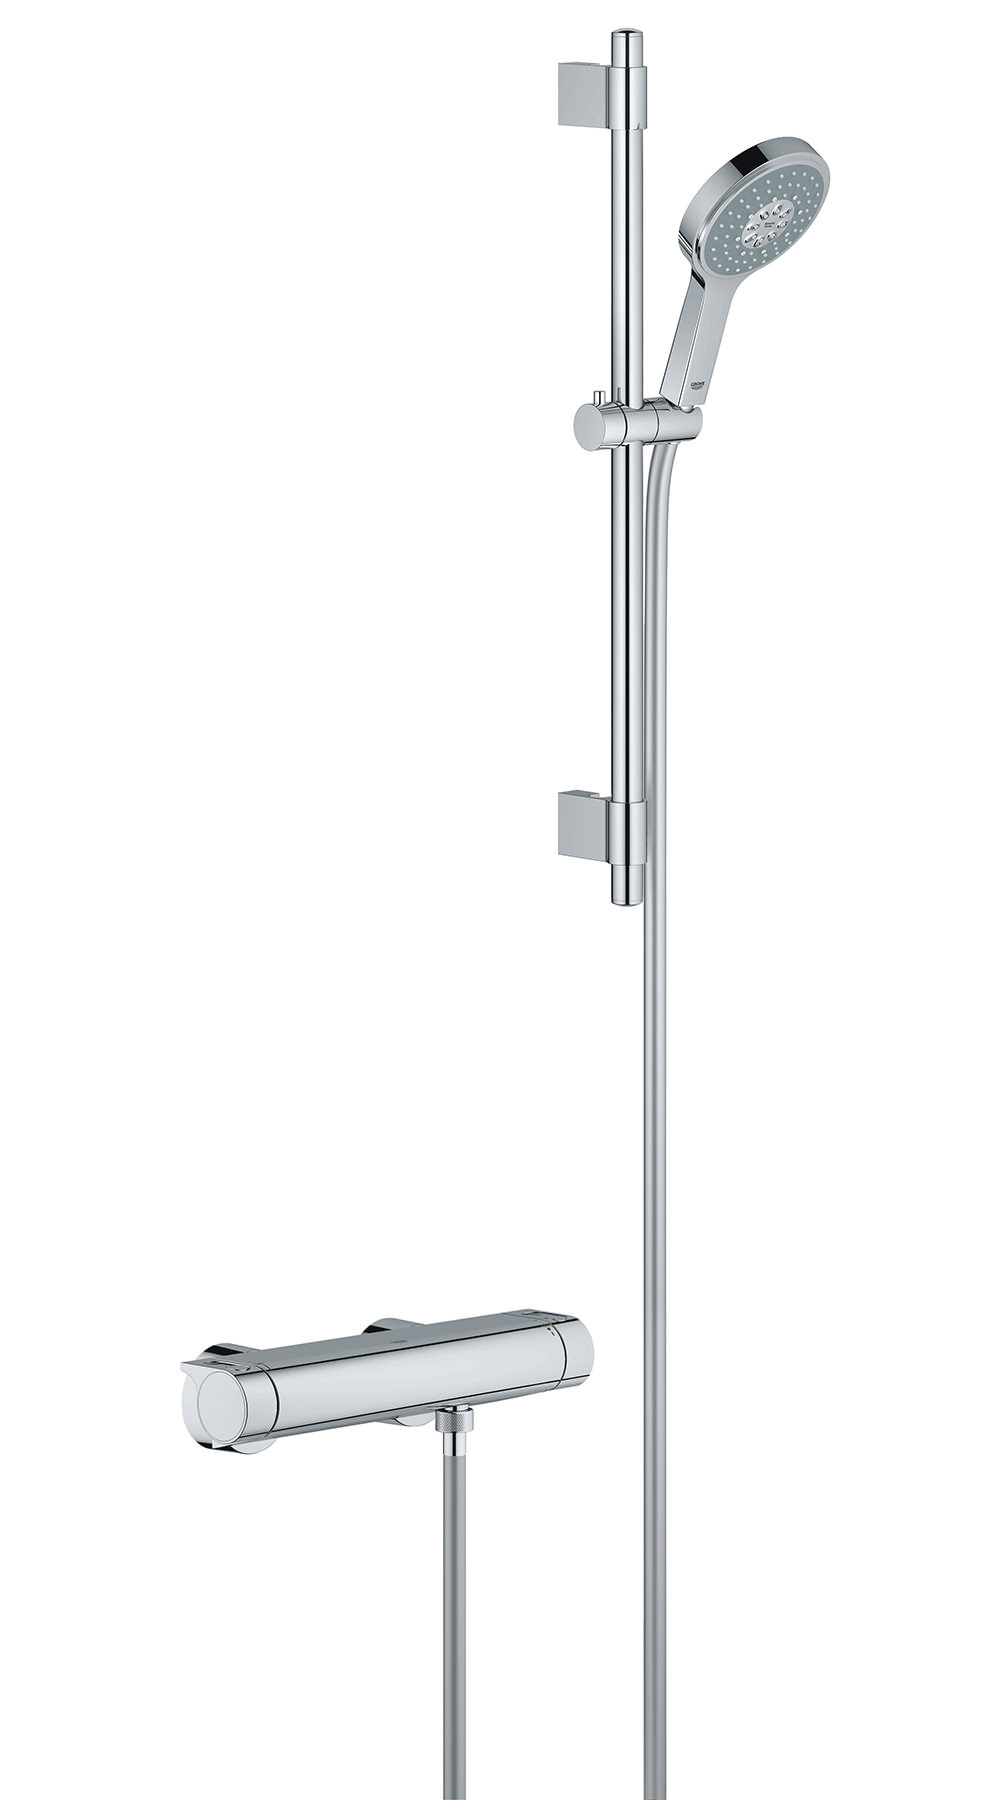 grohe chrome plated shower set with thermostatic exposed valve. Black Bedroom Furniture Sets. Home Design Ideas